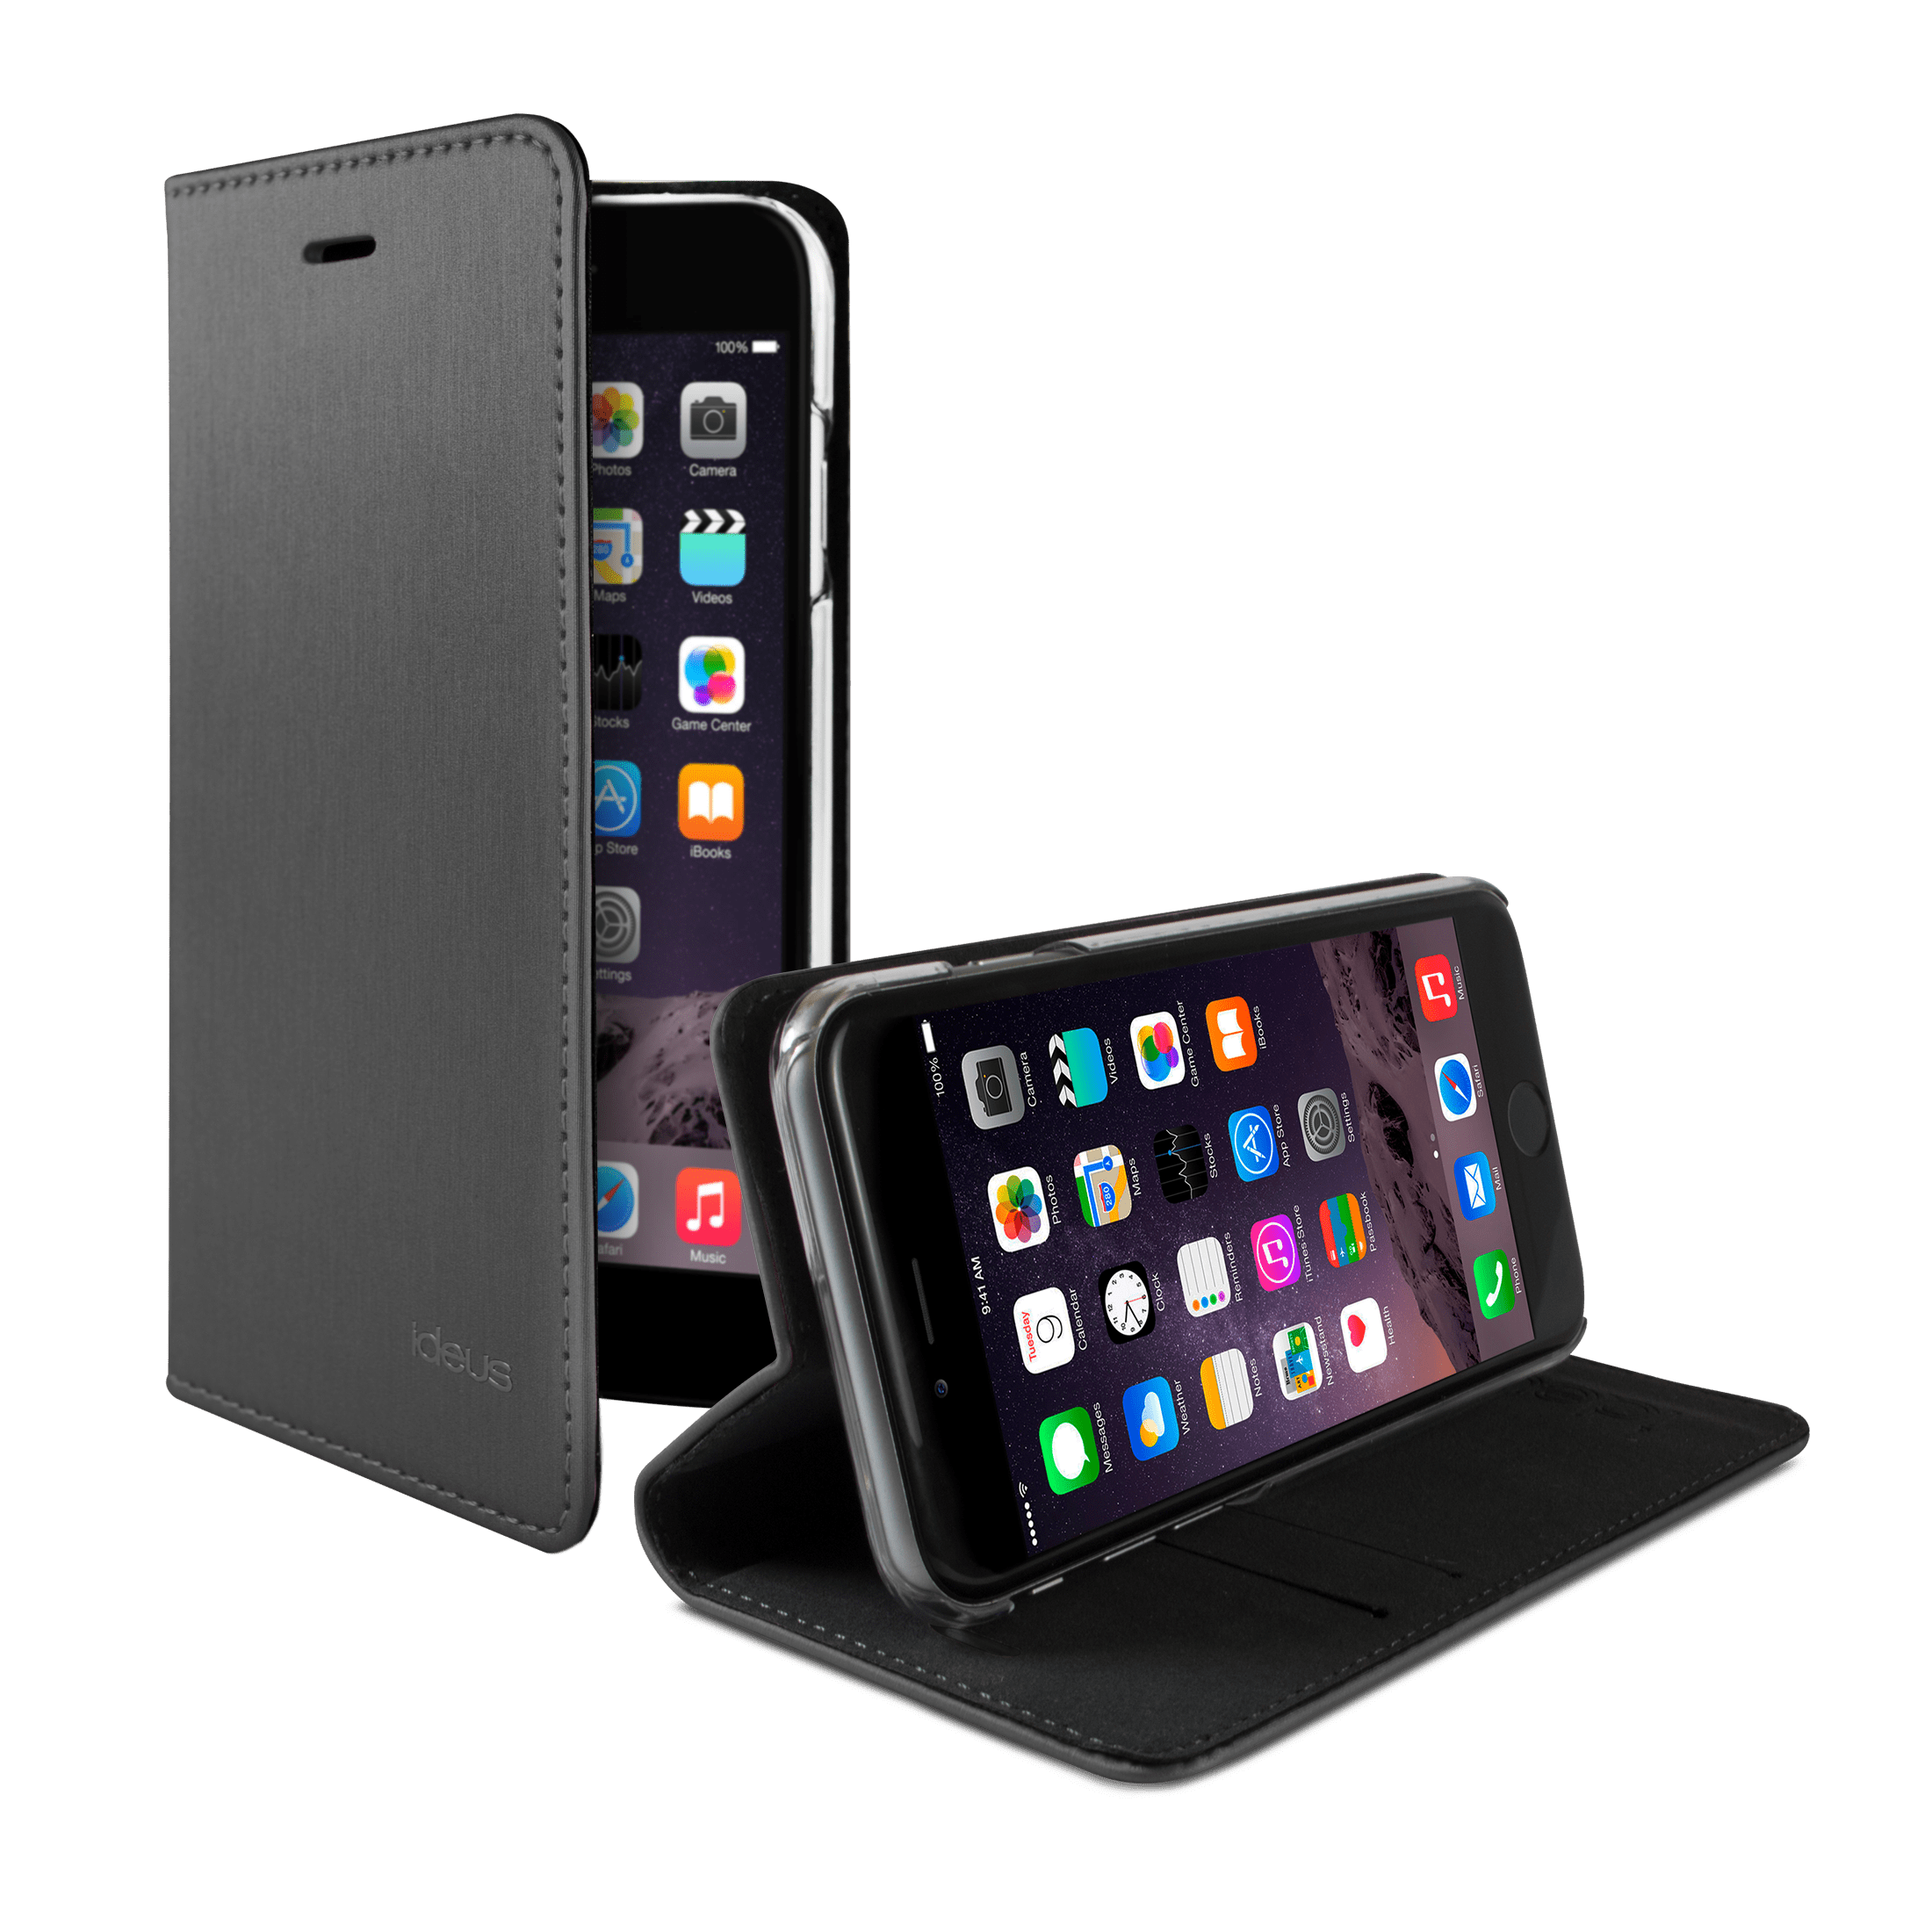 Funda Libro Iphone 7 Funda Libro Con Cierre Magnético Iphone 8 Plus 7 Plus Ideus